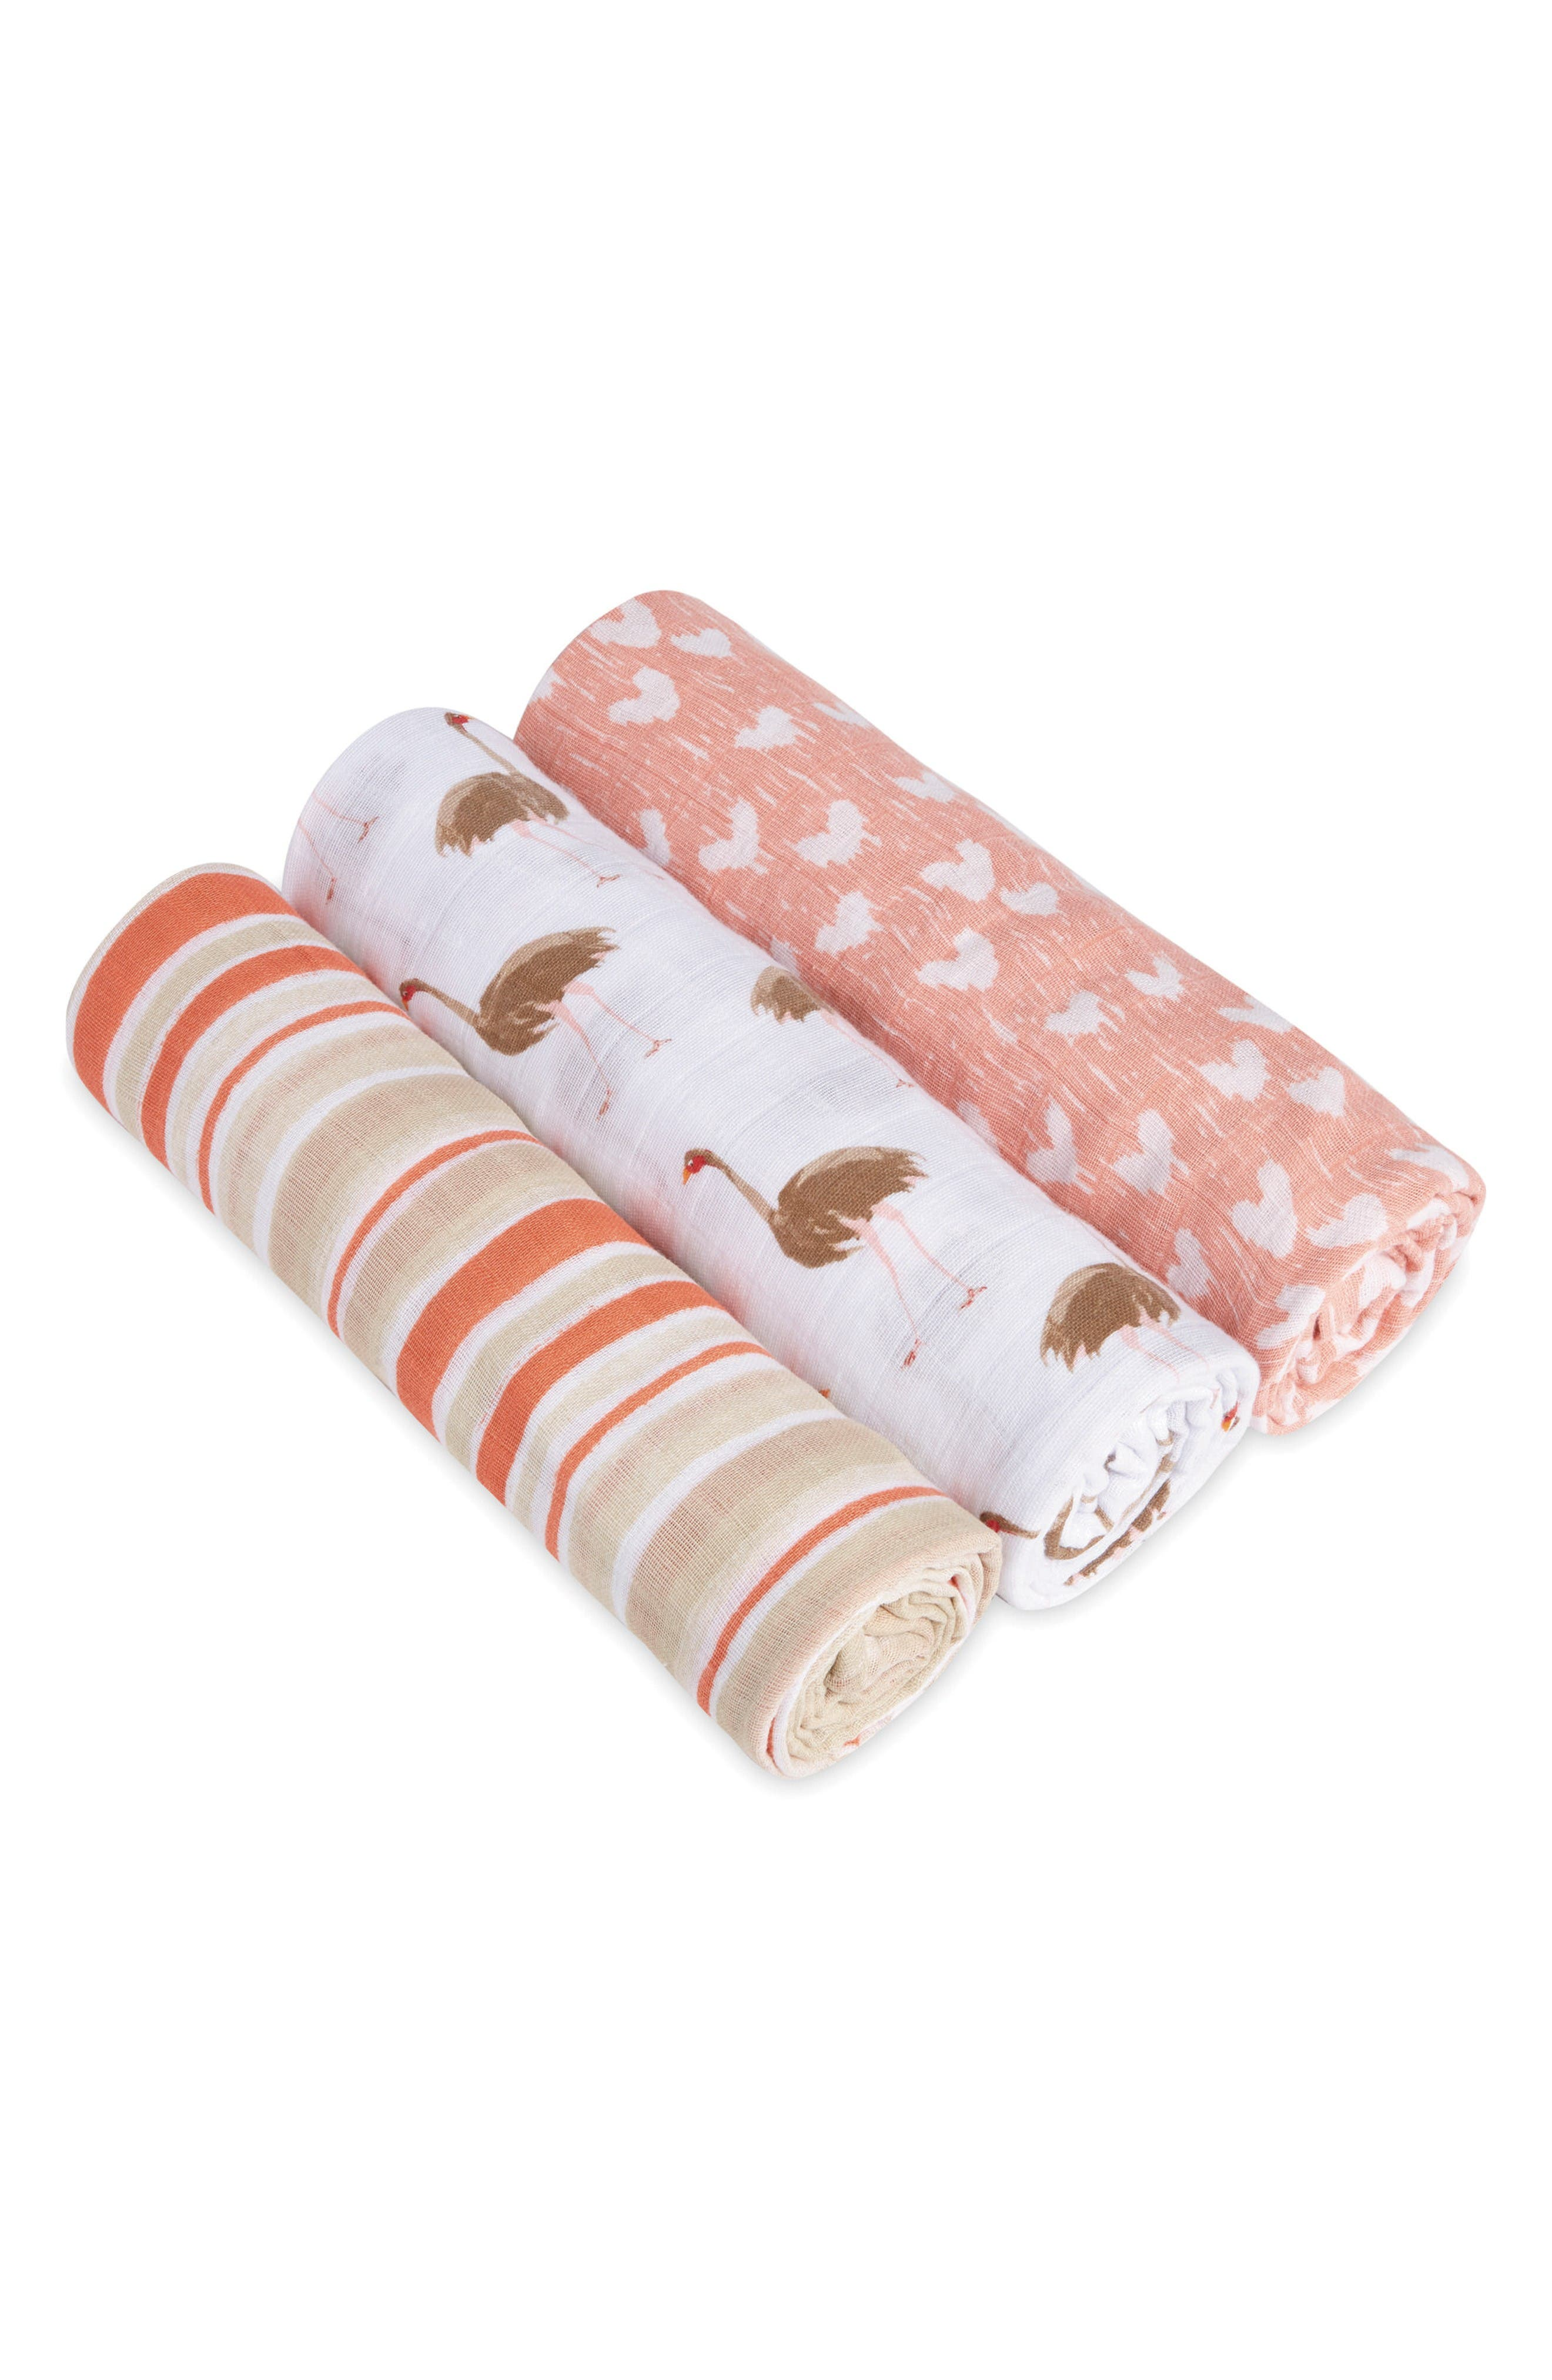 aden + anais 3-Pack Classic Swaddling Cloths